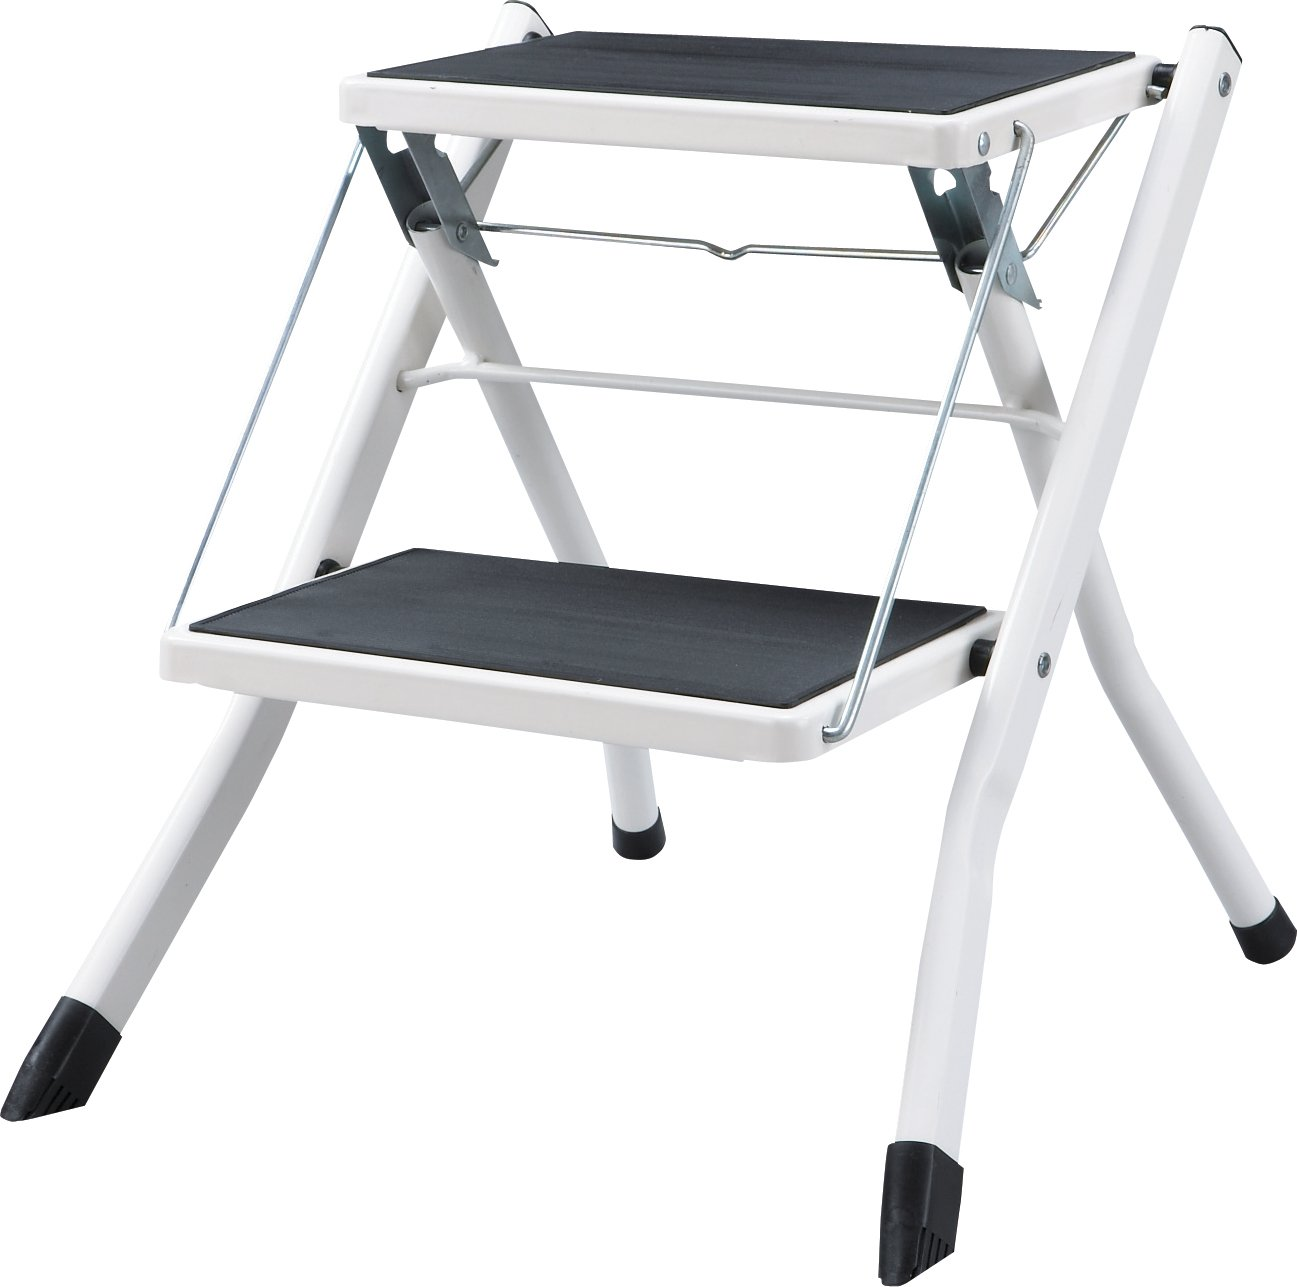 AZUMAYA PC-334WH Folding Step 17 Inches Height Steel Frame Material, W16.9 x D18.9 x H17.0, White